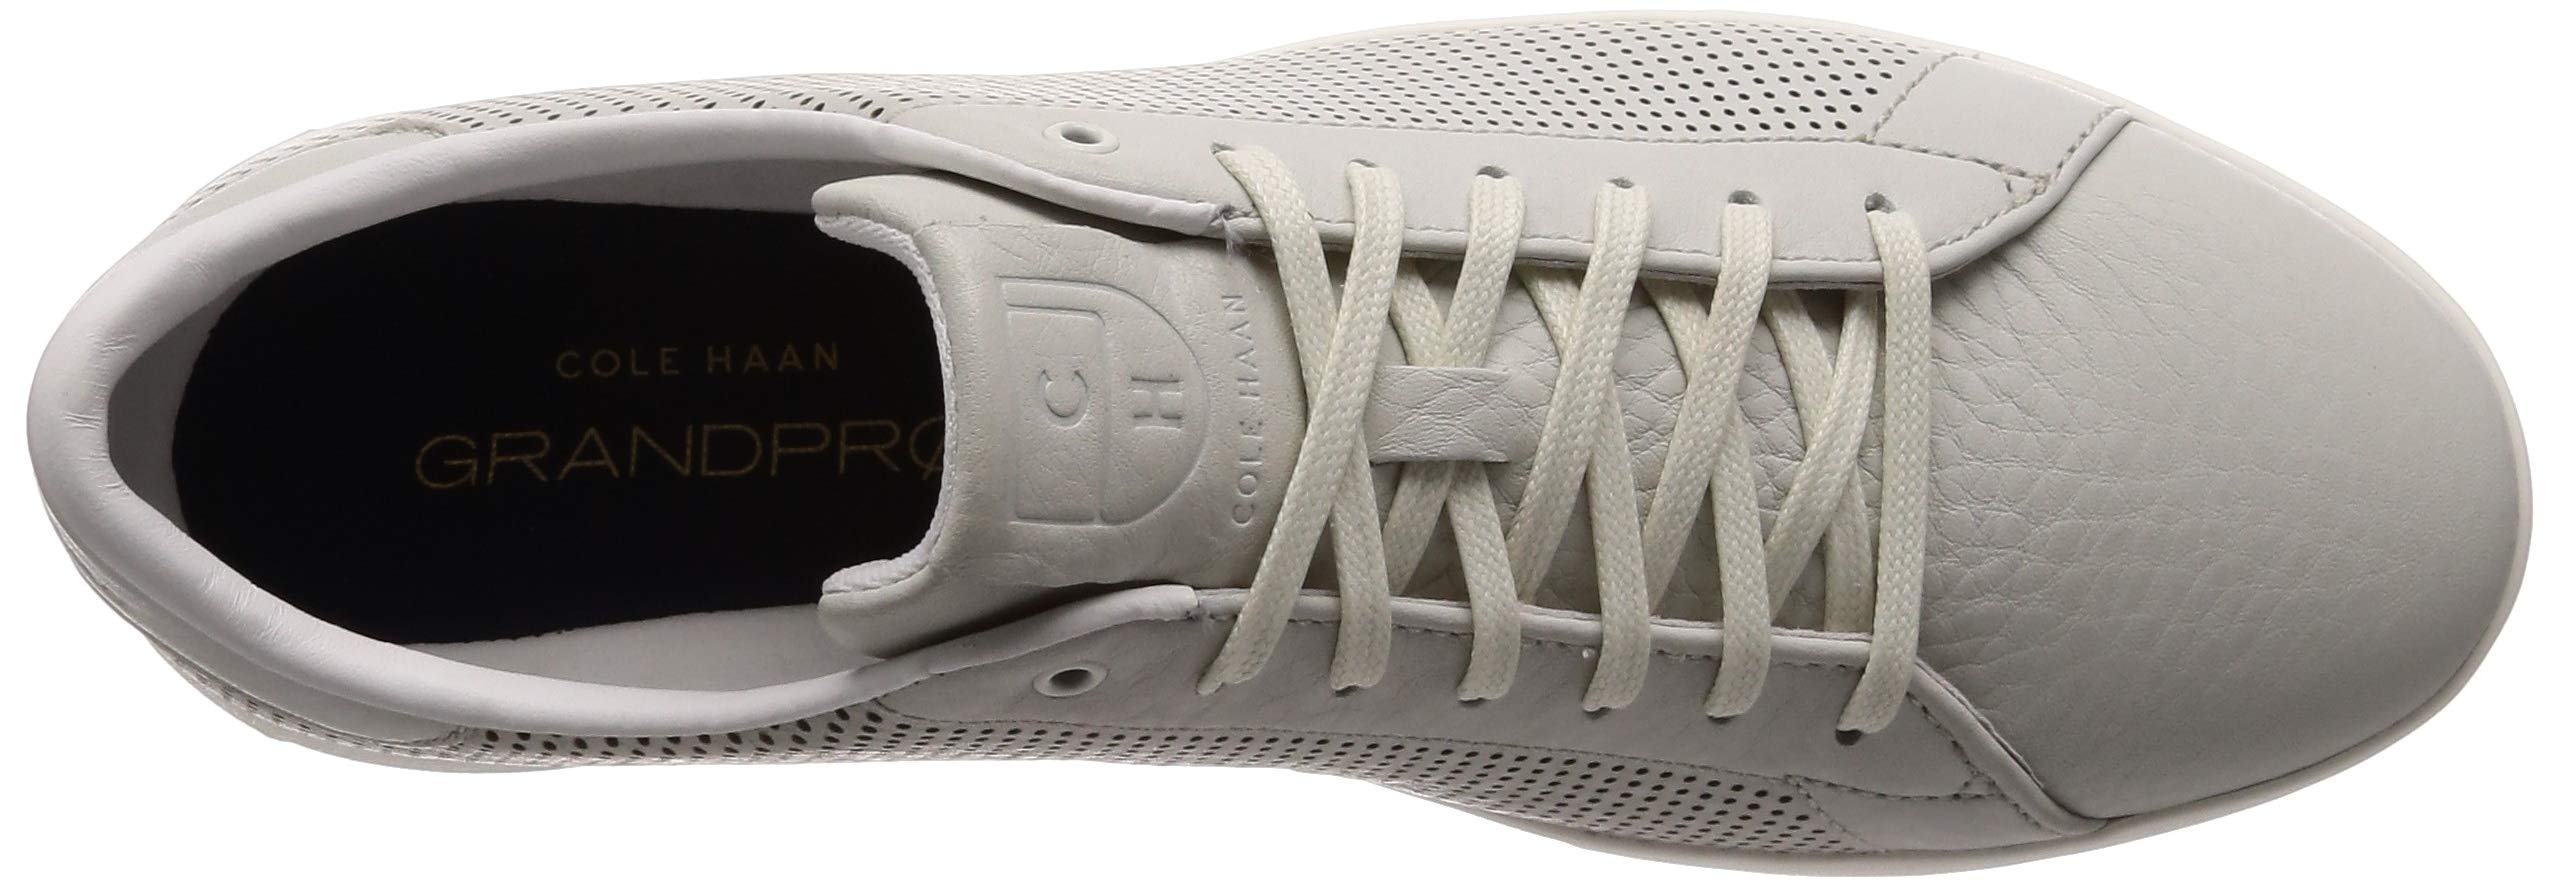 Cole Haan Mens Grandpro Tennis Sneaker 7 Chalk Tumbled Leather by Cole Haan (Image #7)